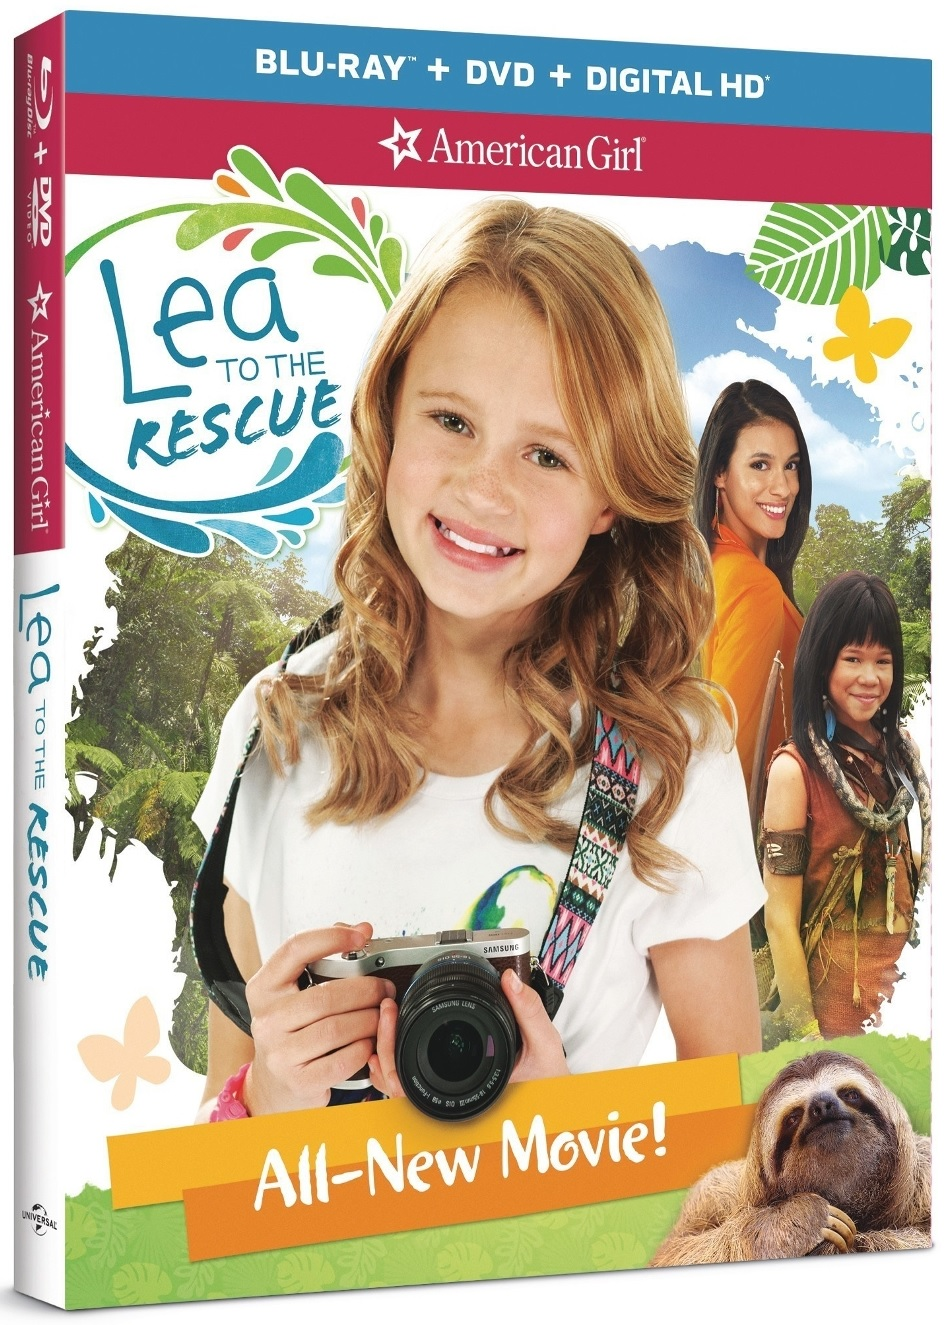 American Girl: Lea To The Rescue Blu-ray Review